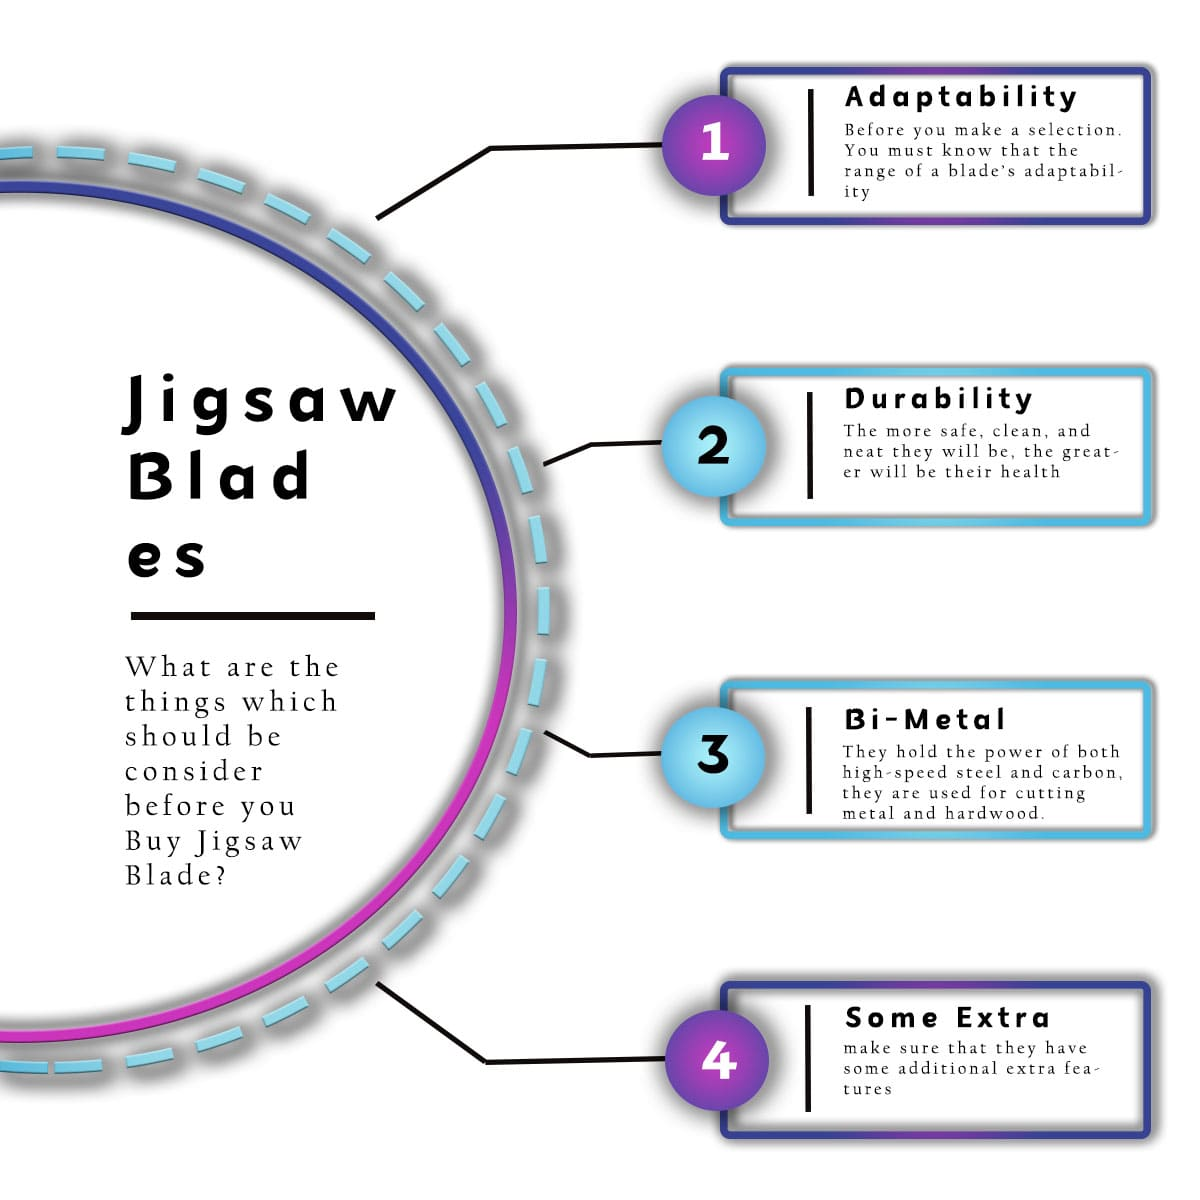 best jigsaw blades, infographic of jigsaw blade